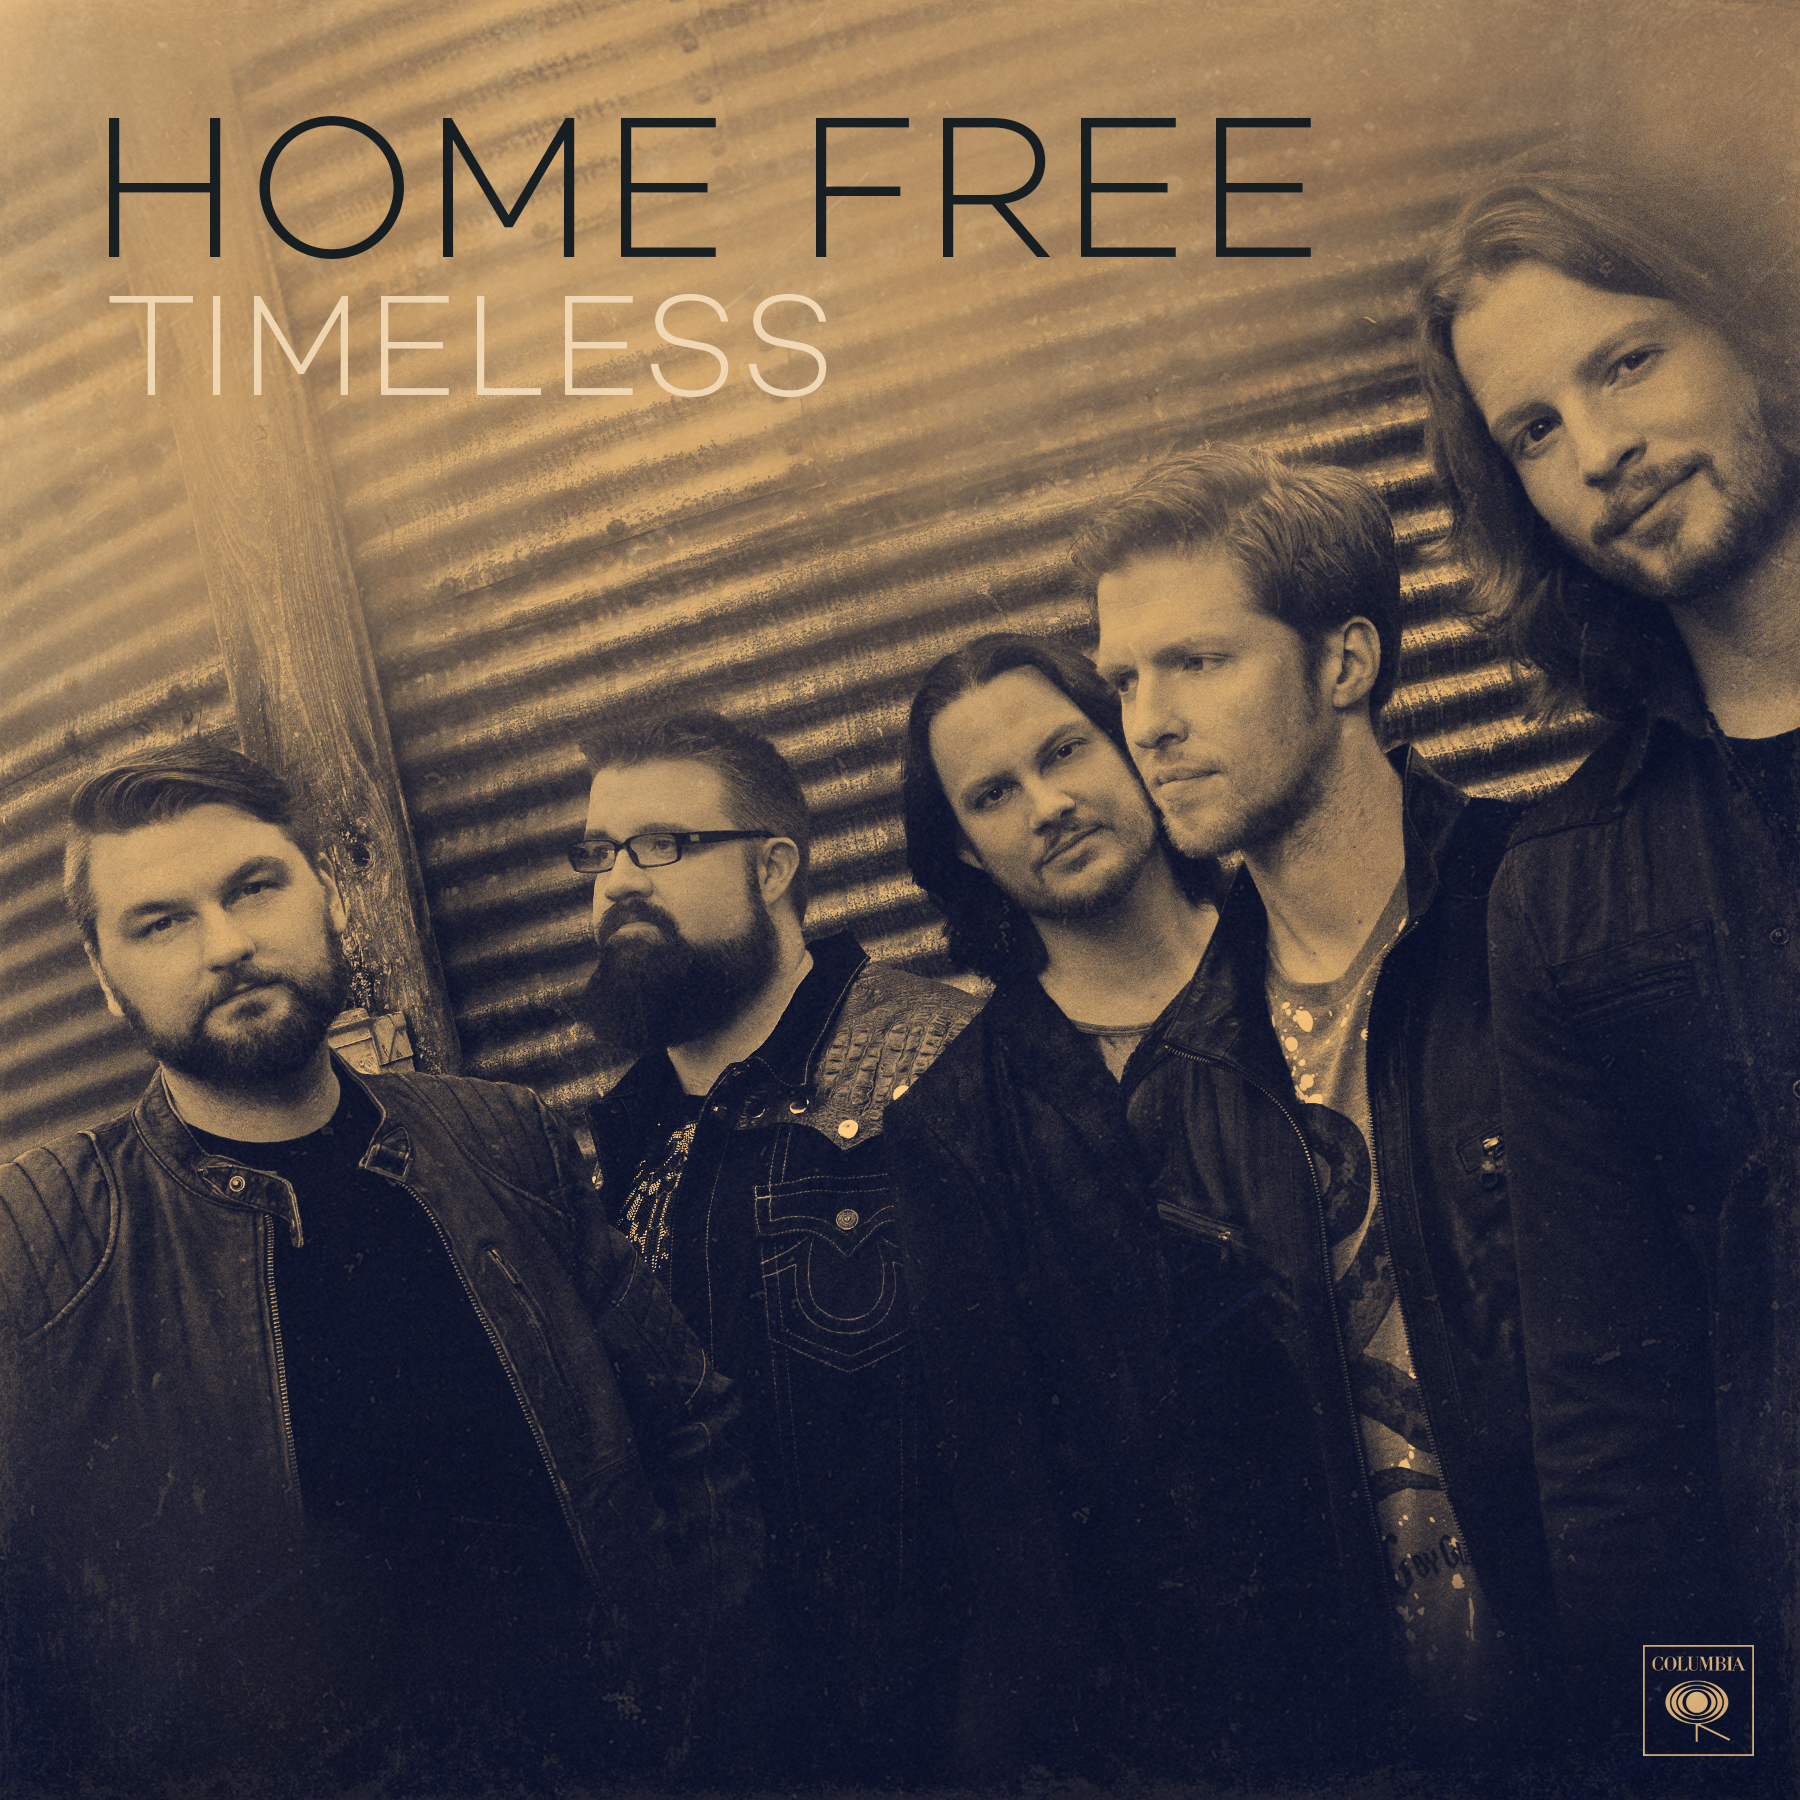 home free announce new album